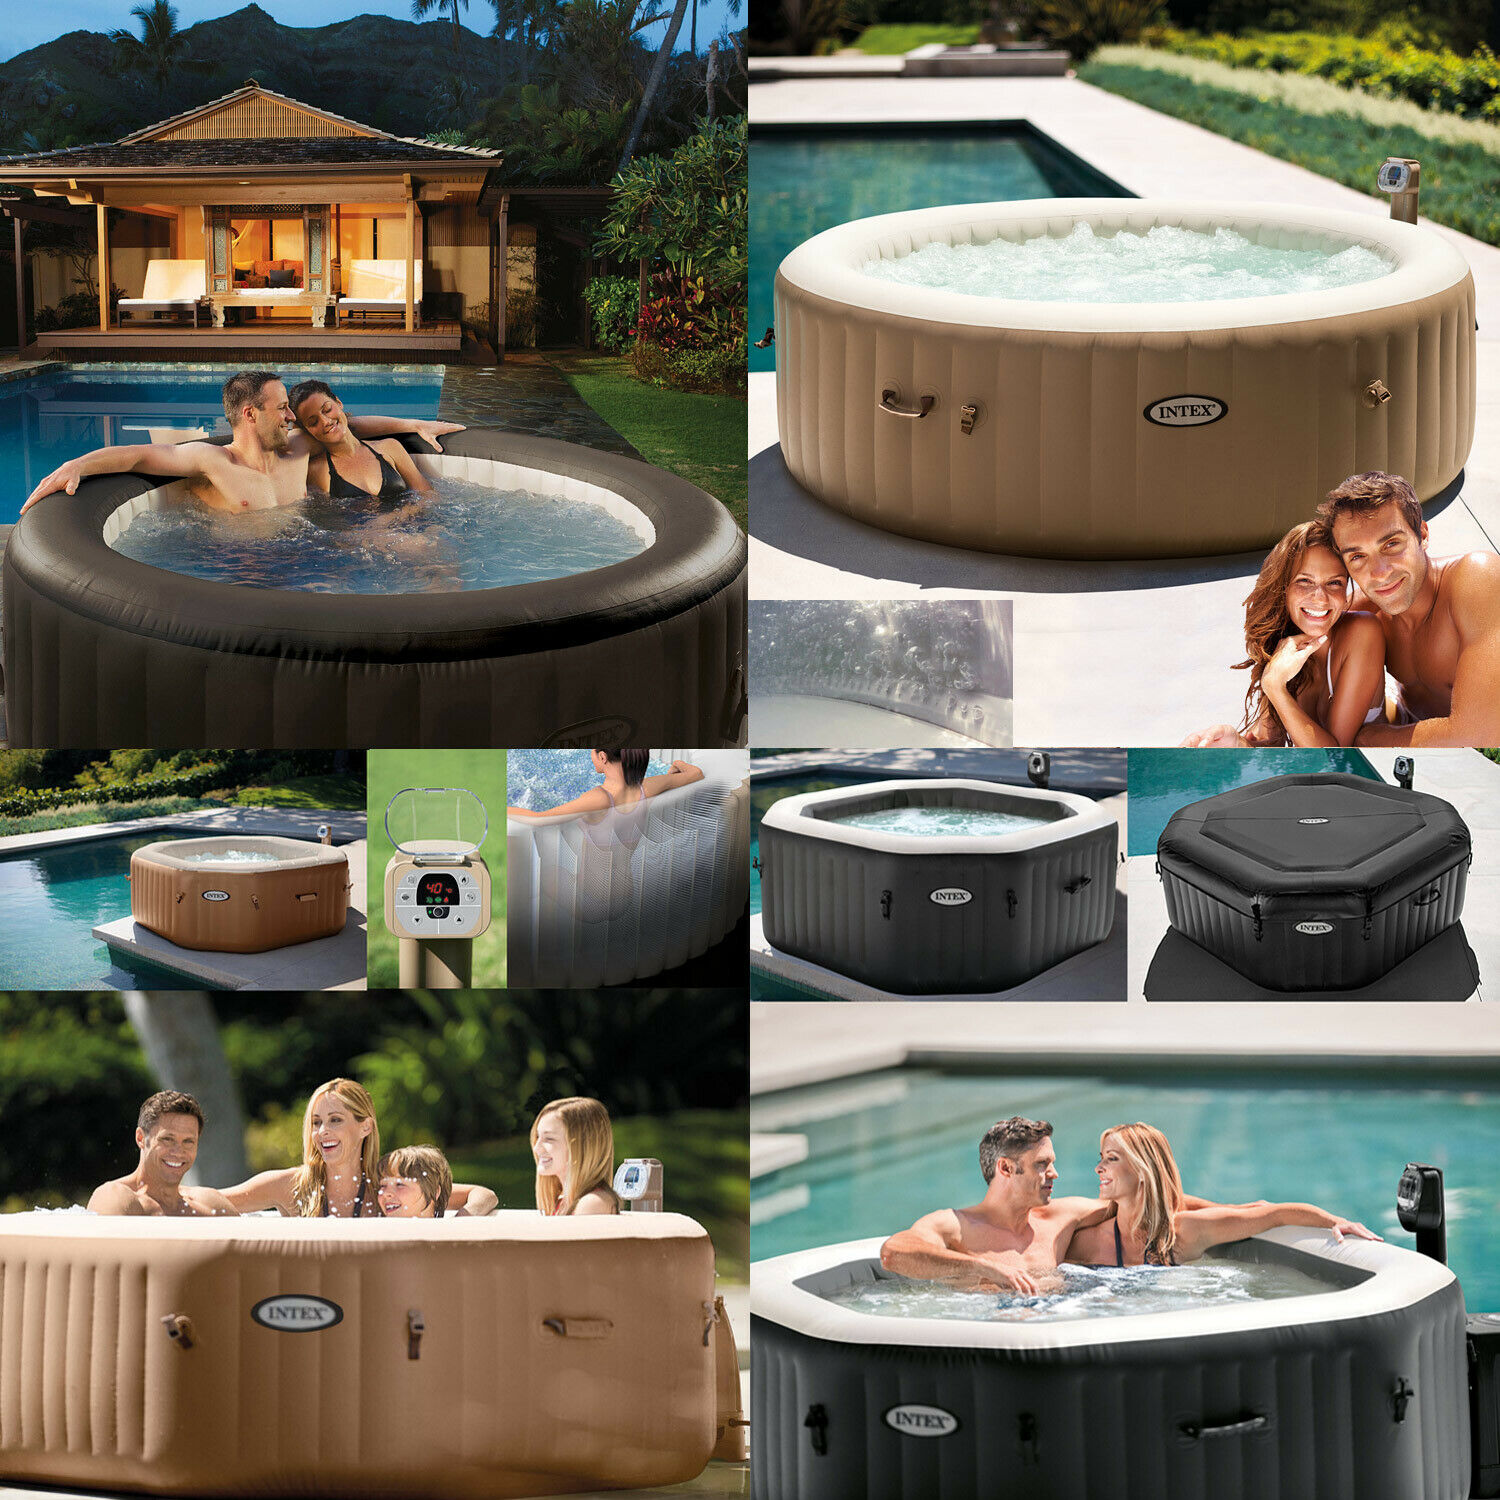 intex deluxe whirlpool spa pool badewanne aufblasbar. Black Bedroom Furniture Sets. Home Design Ideas